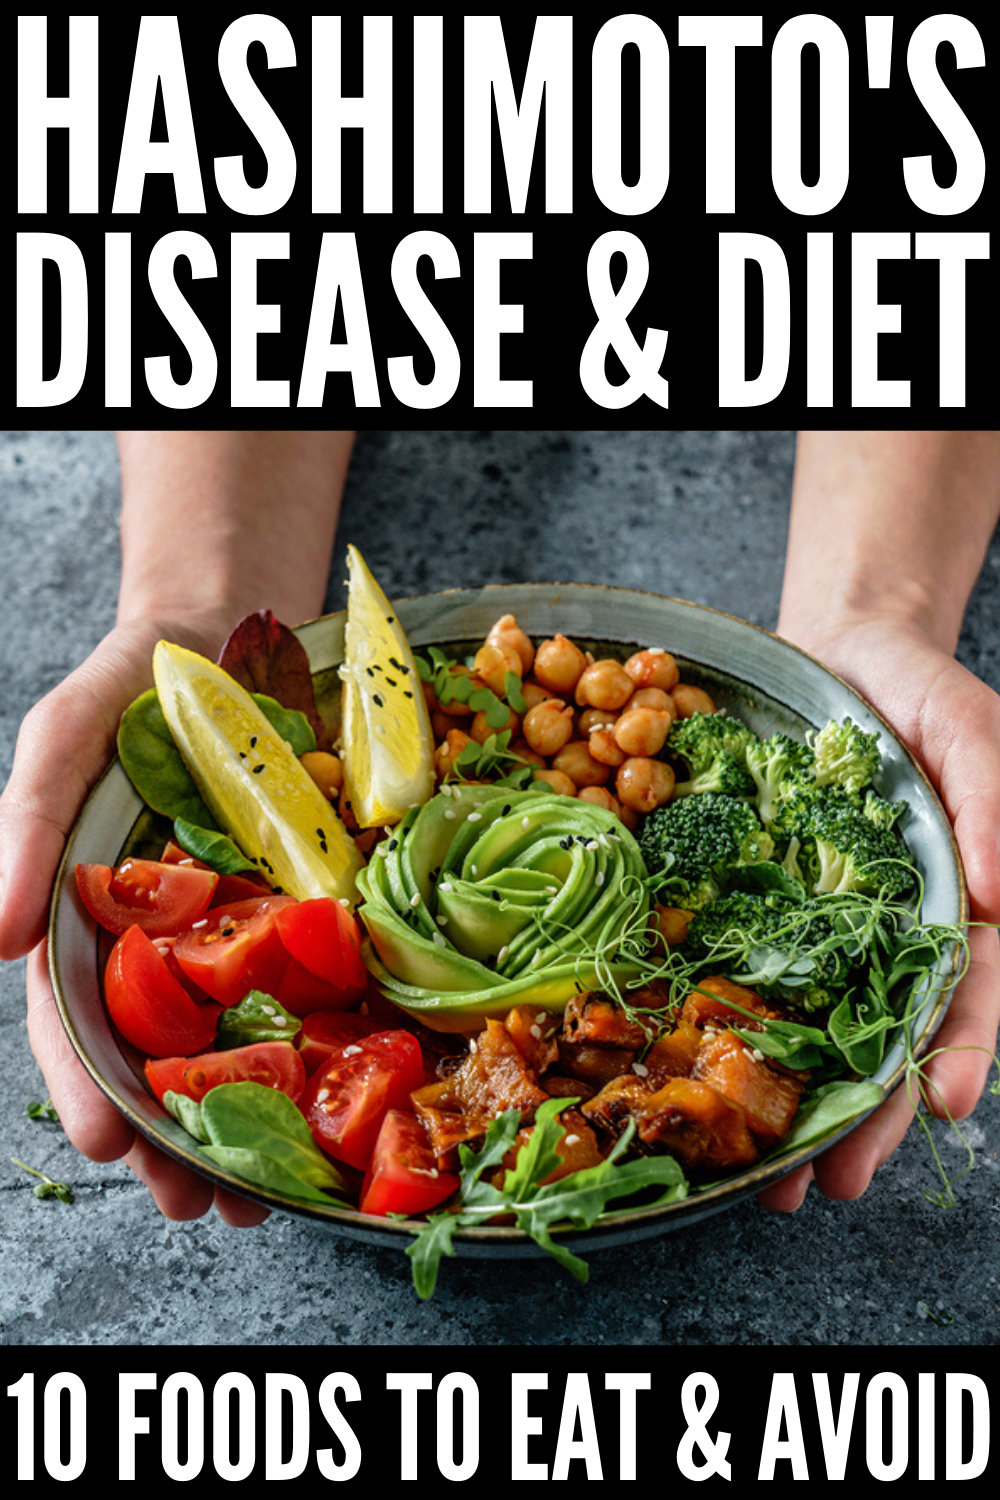 Hashimoto S Disease Diet 10 Foods To Eat And Avoid Healthy Eating Menu Heart Healthy Recipes Cholesterol Diet And Nutrition